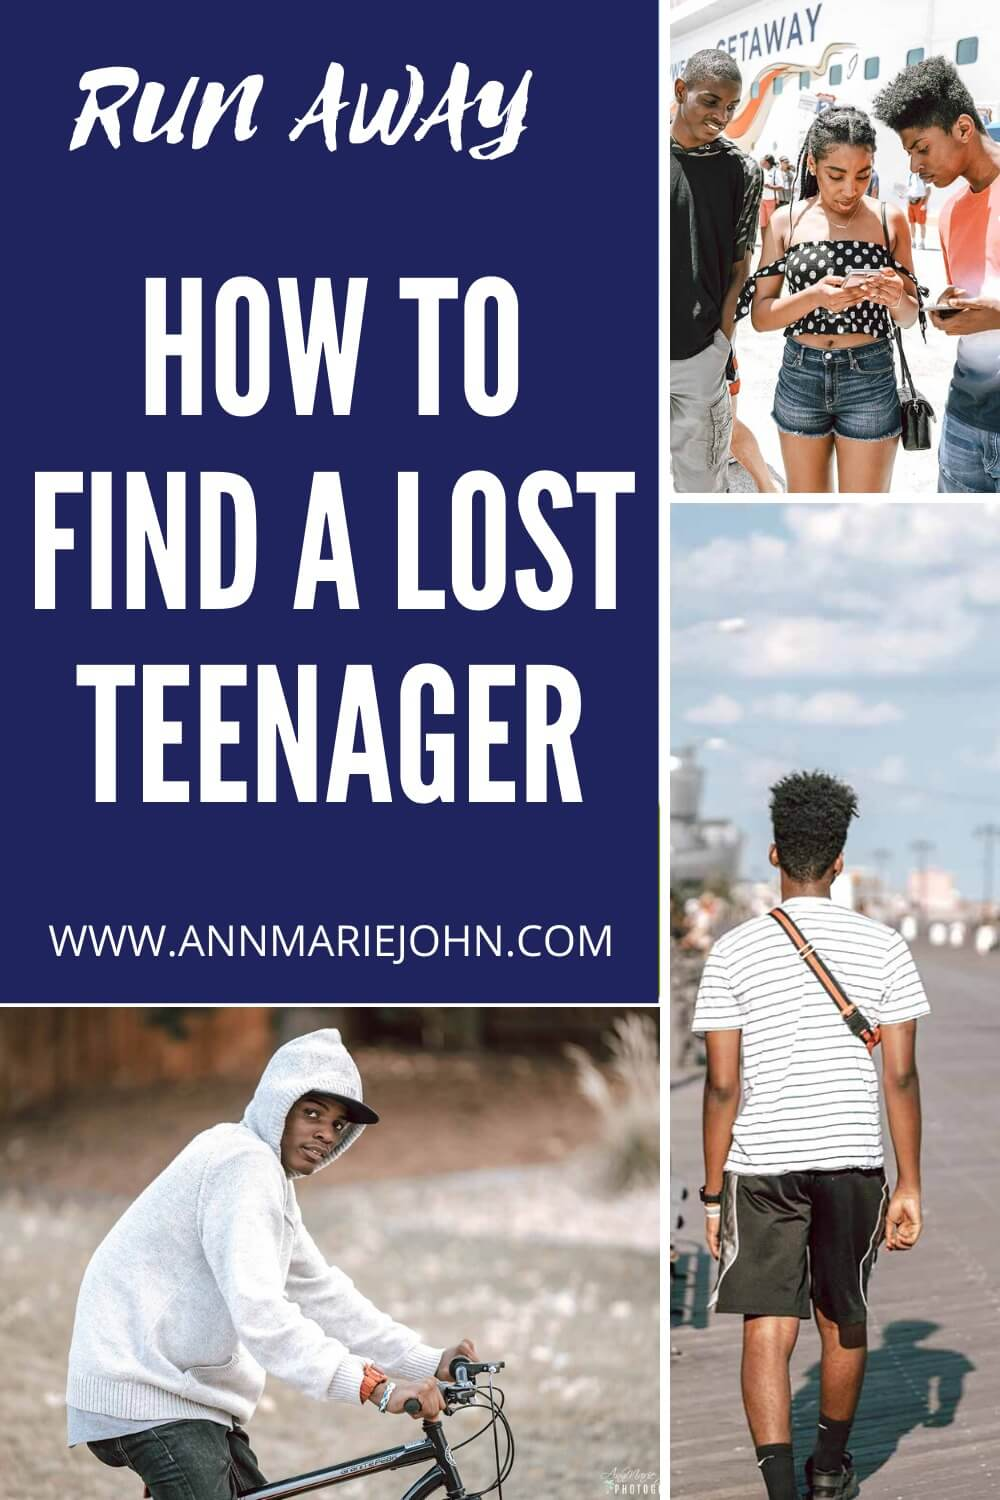 How to find a lost teenager pinterest image